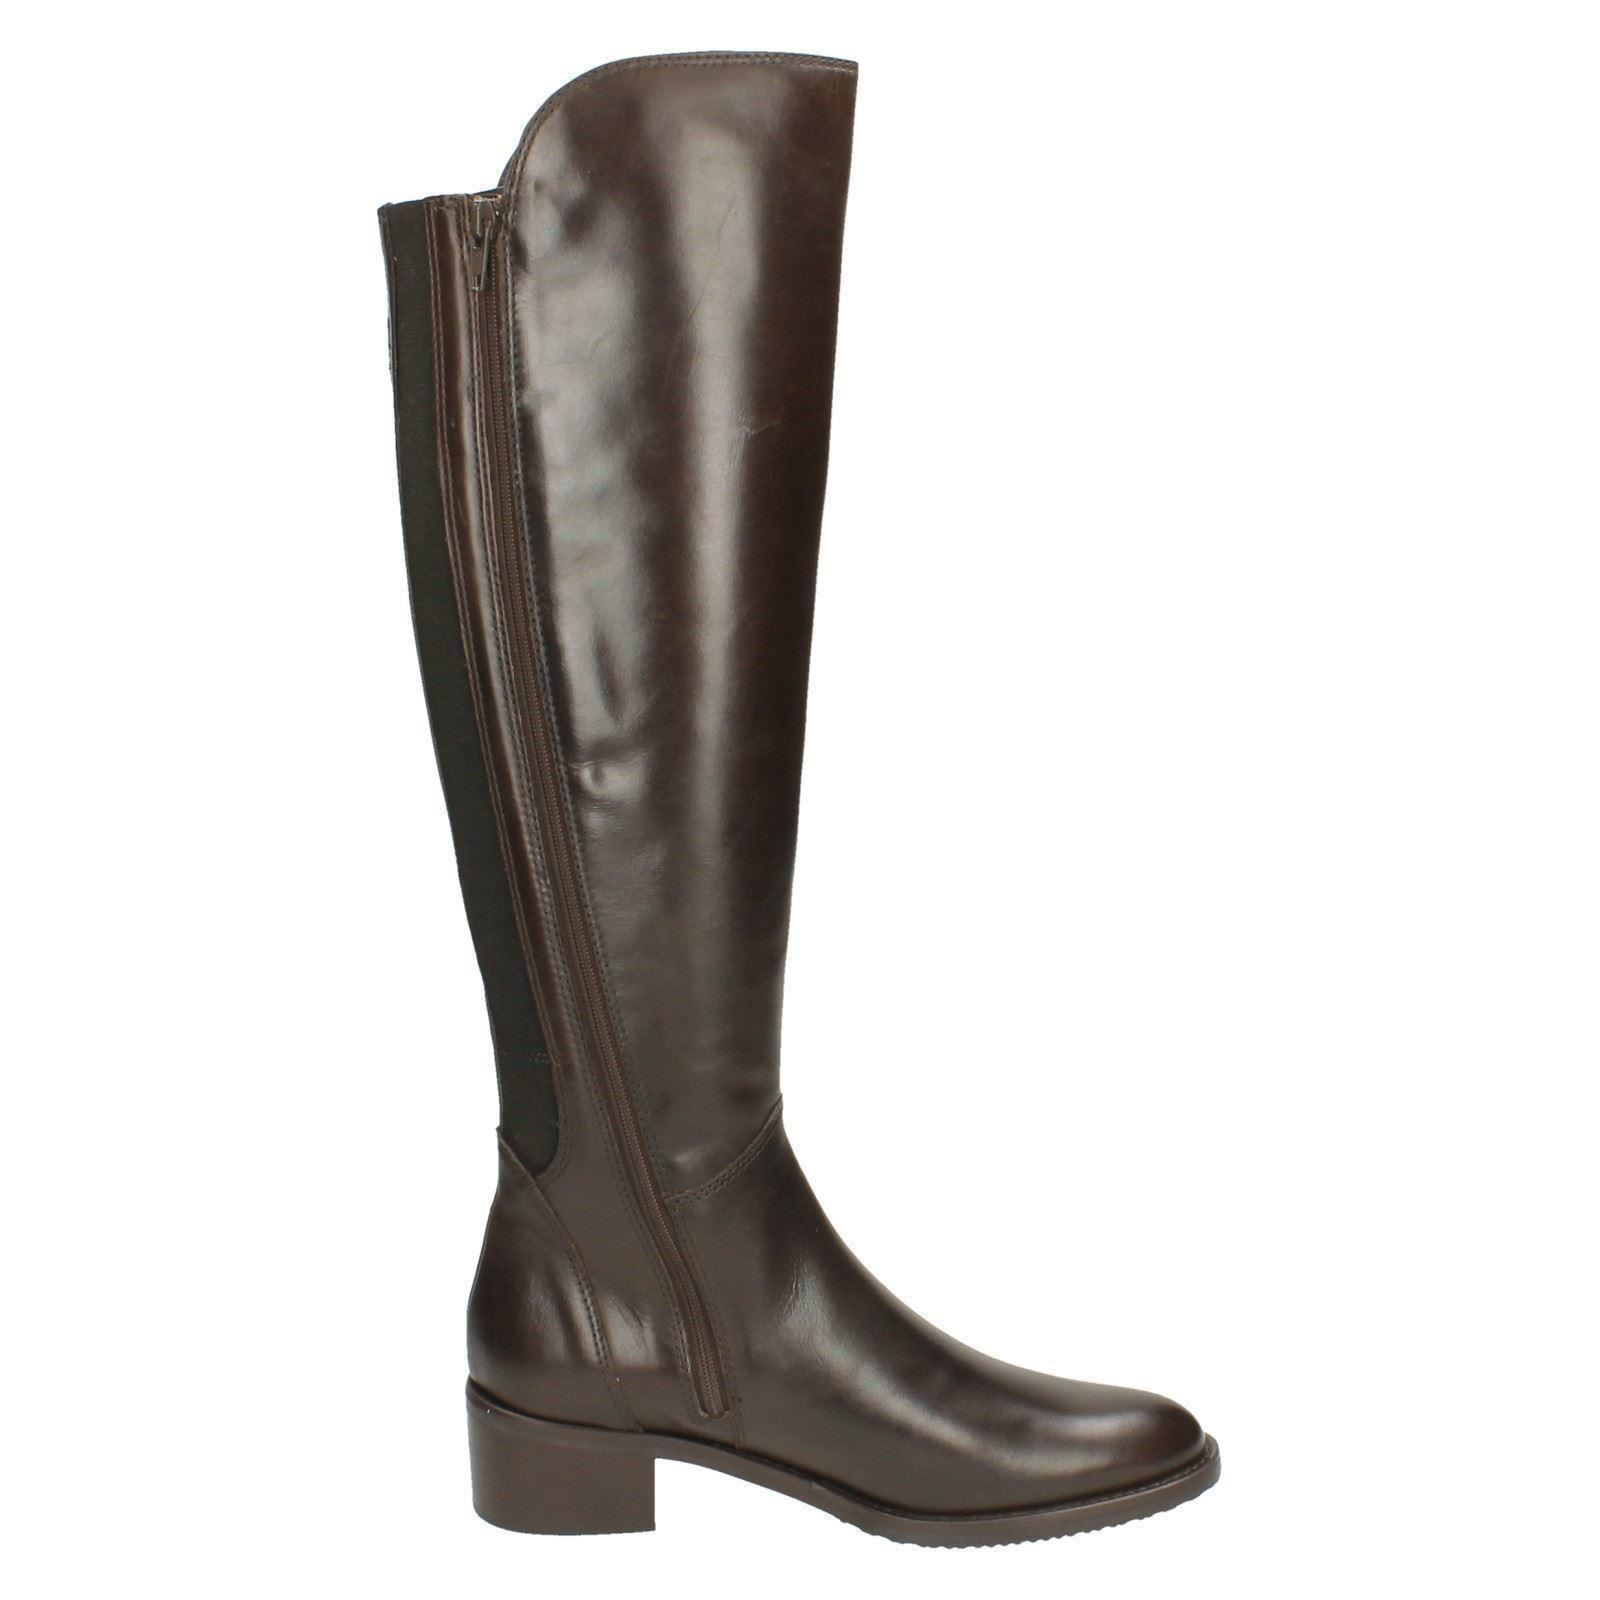 1356c74773b Details about Ladies Clarks Knee High Boots Valana Melrose